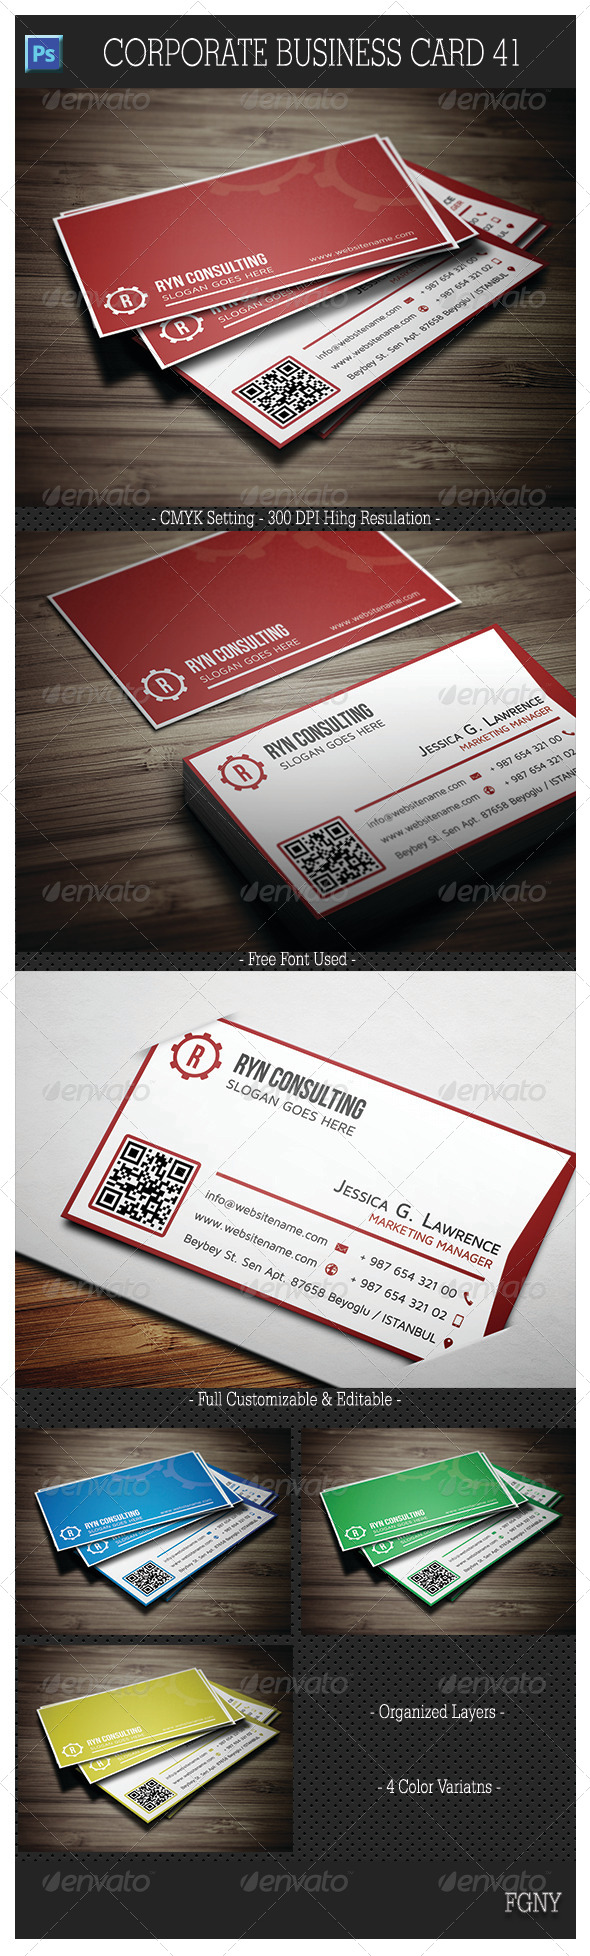 Corporate Business Card 41 - Corporate Business Cards